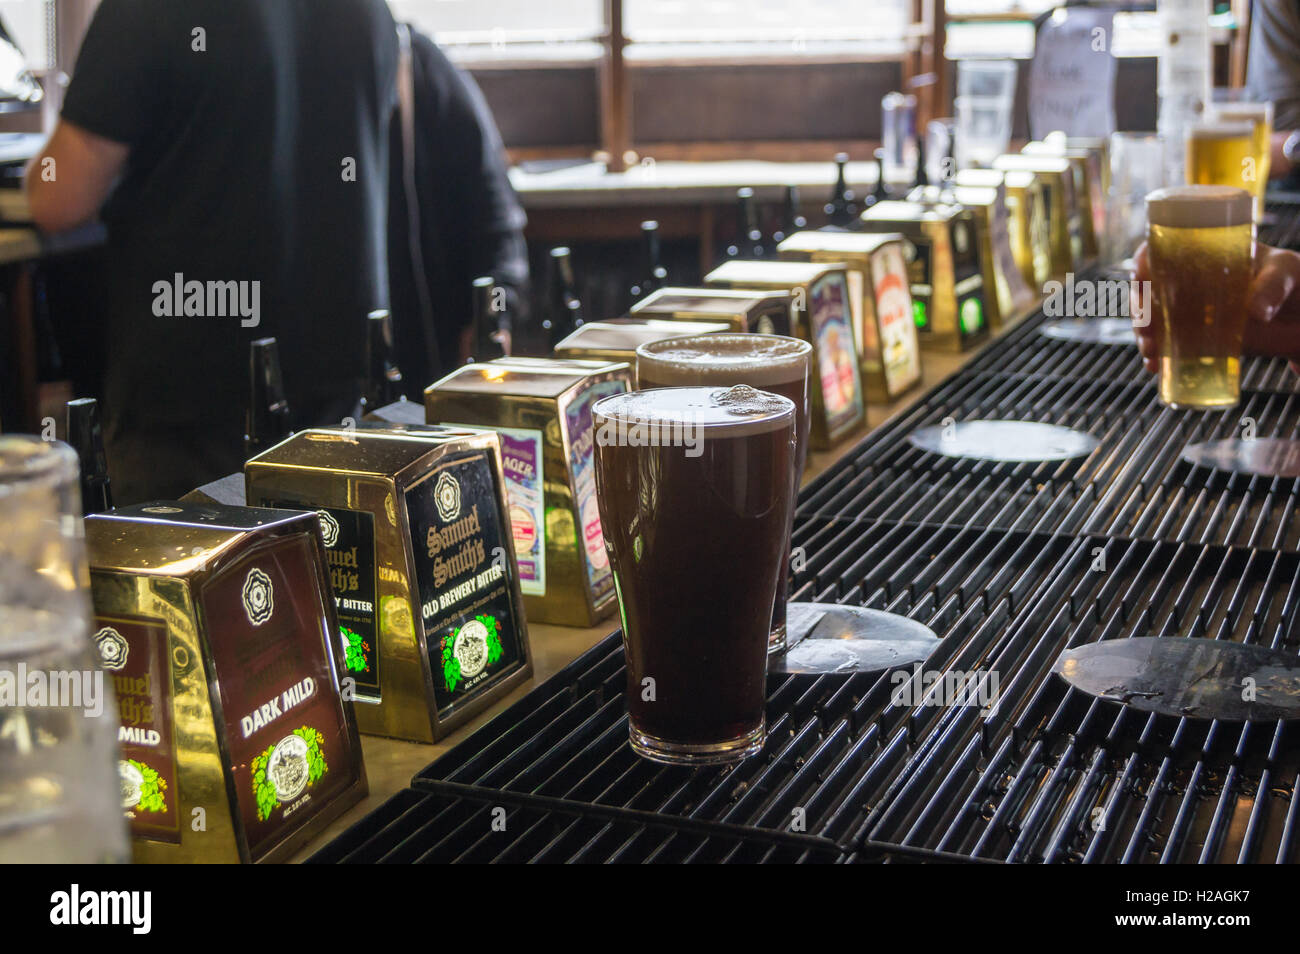 Pints of stout on the bar at  Sam Smith's  Sinclair's Oyster Bar, Cathedral Approach, Manchester, England - Stock Image